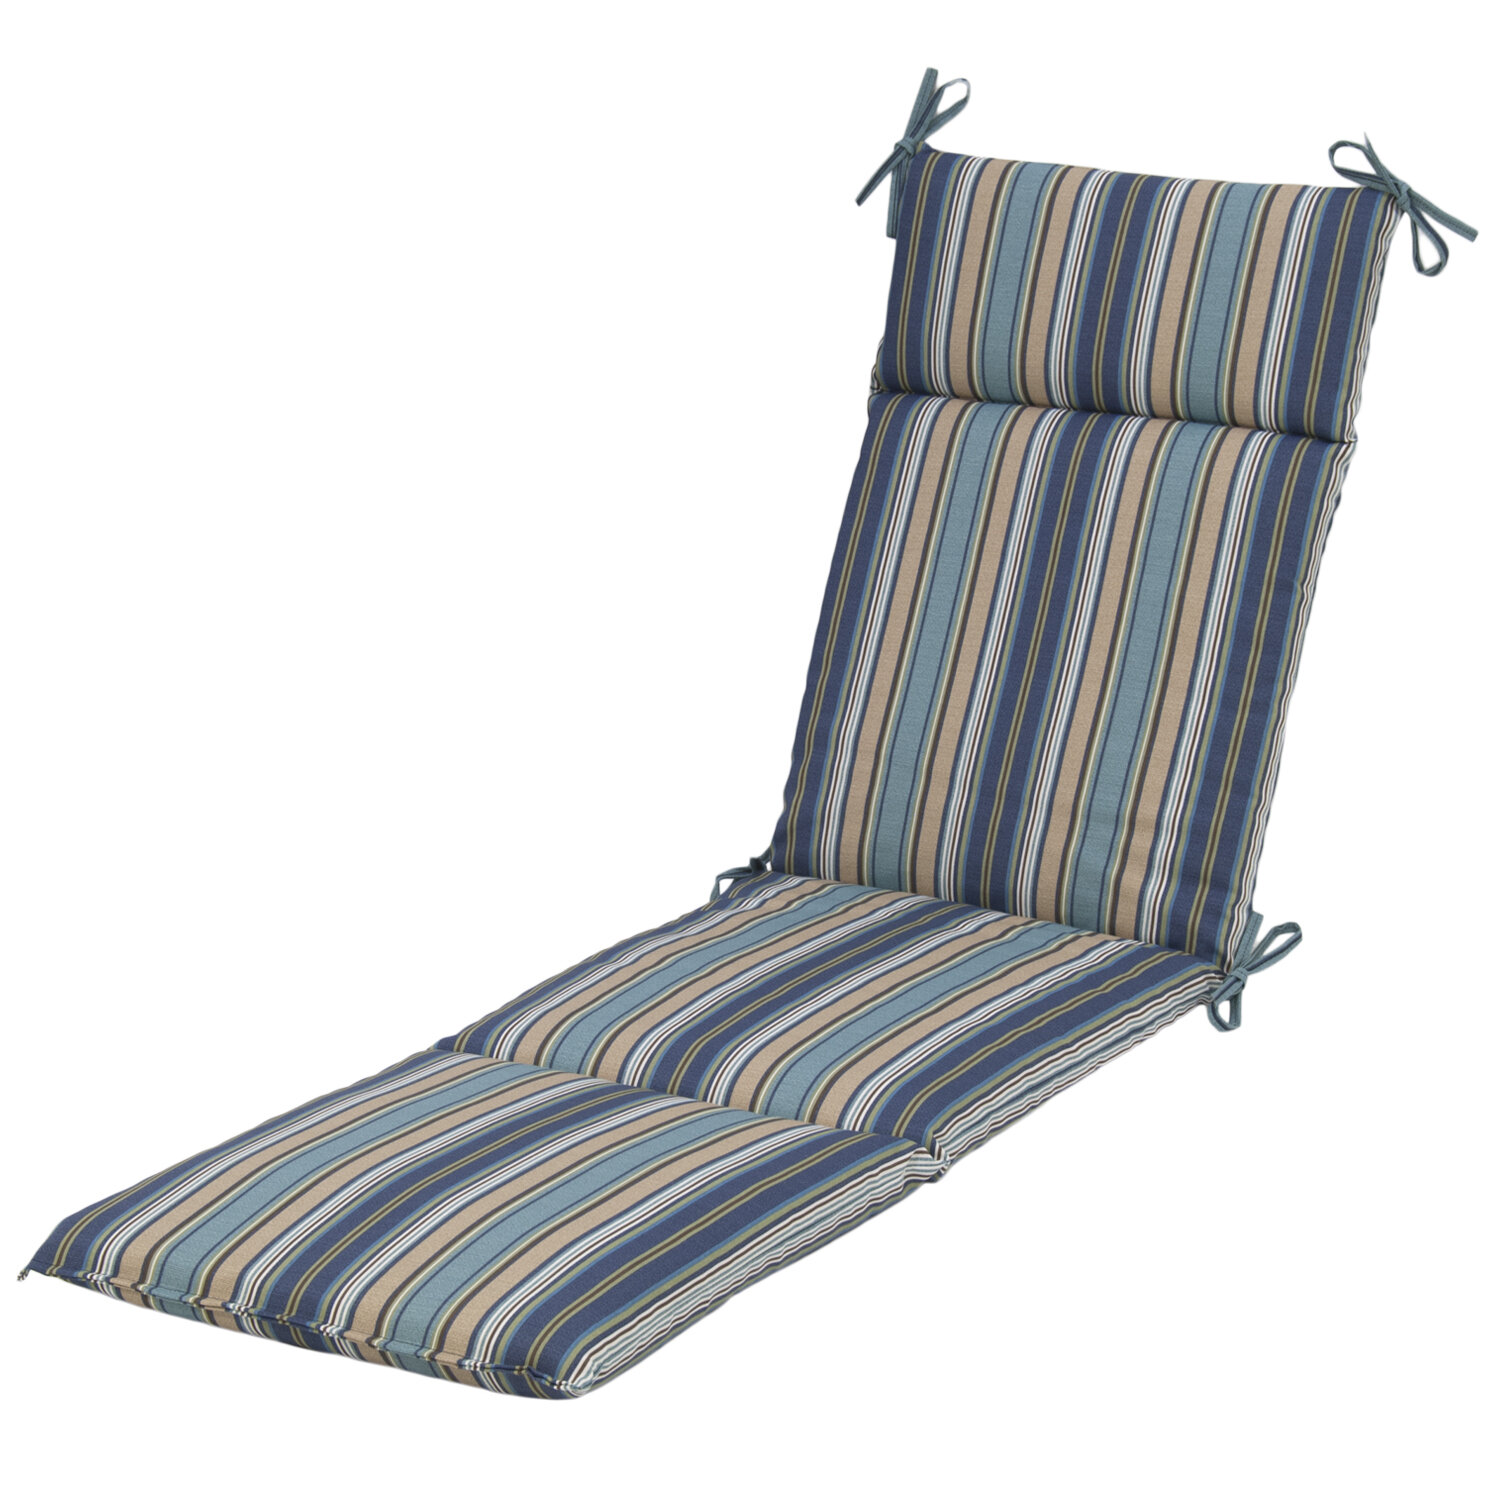 Plantation patterns quebec stripe pacific outdoor chaise for Blue and white striped chaise lounge cushions